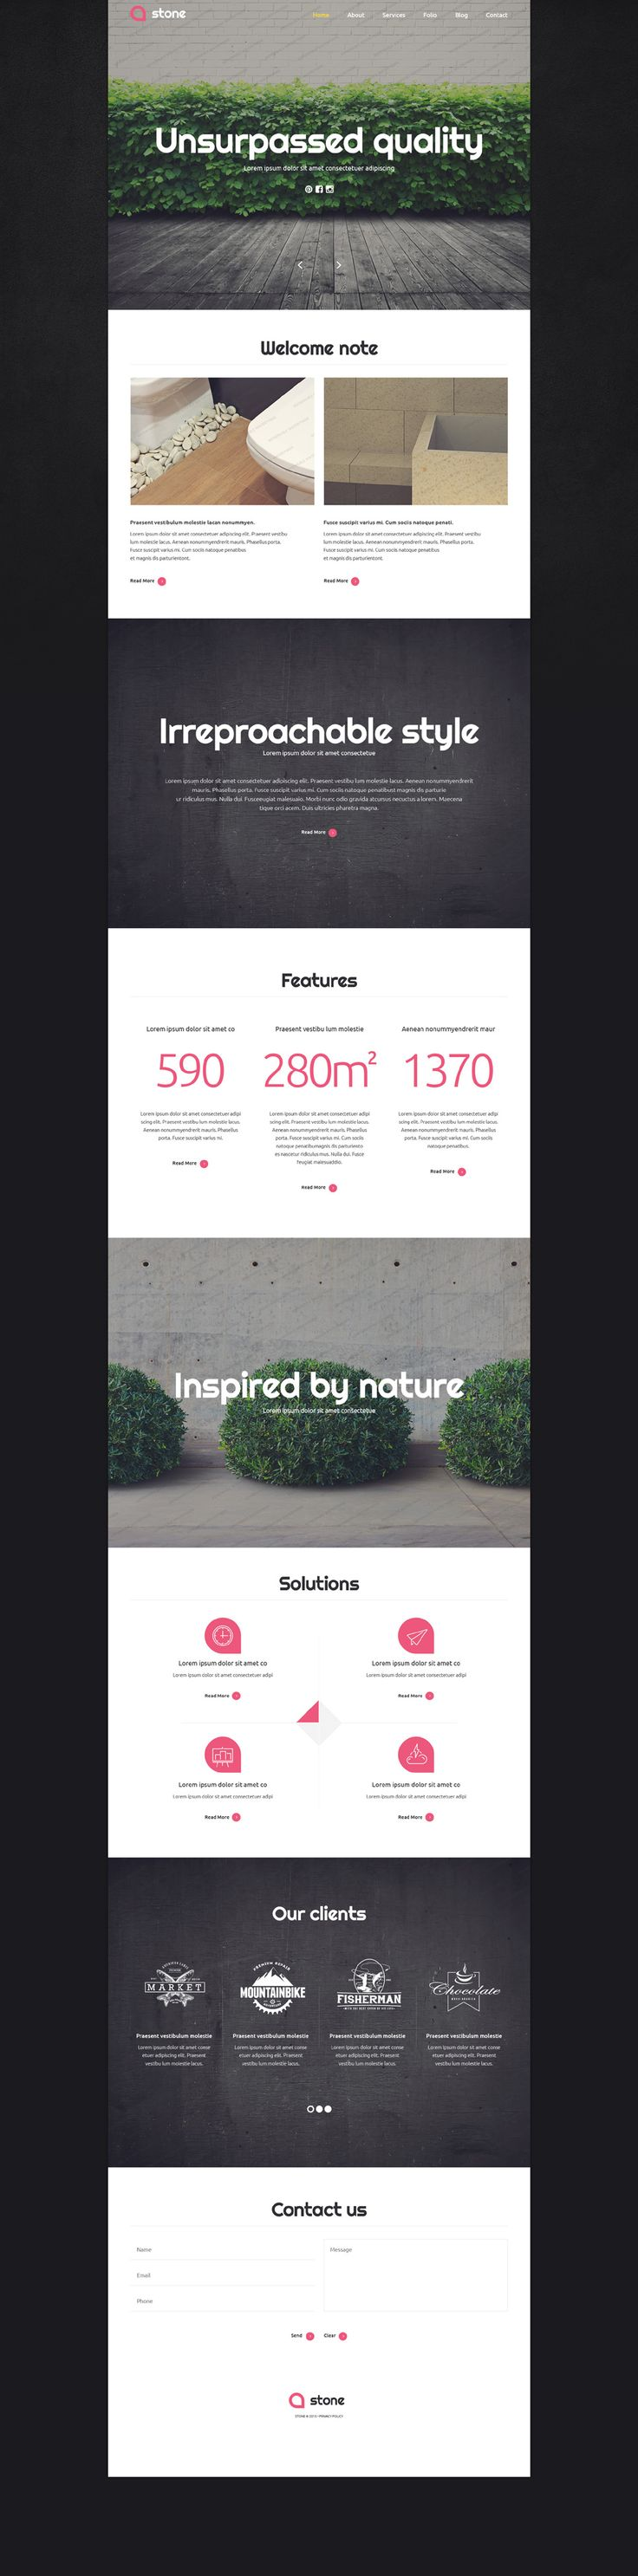 135 best FREE Website Templates images on Pinterest | Free website ...